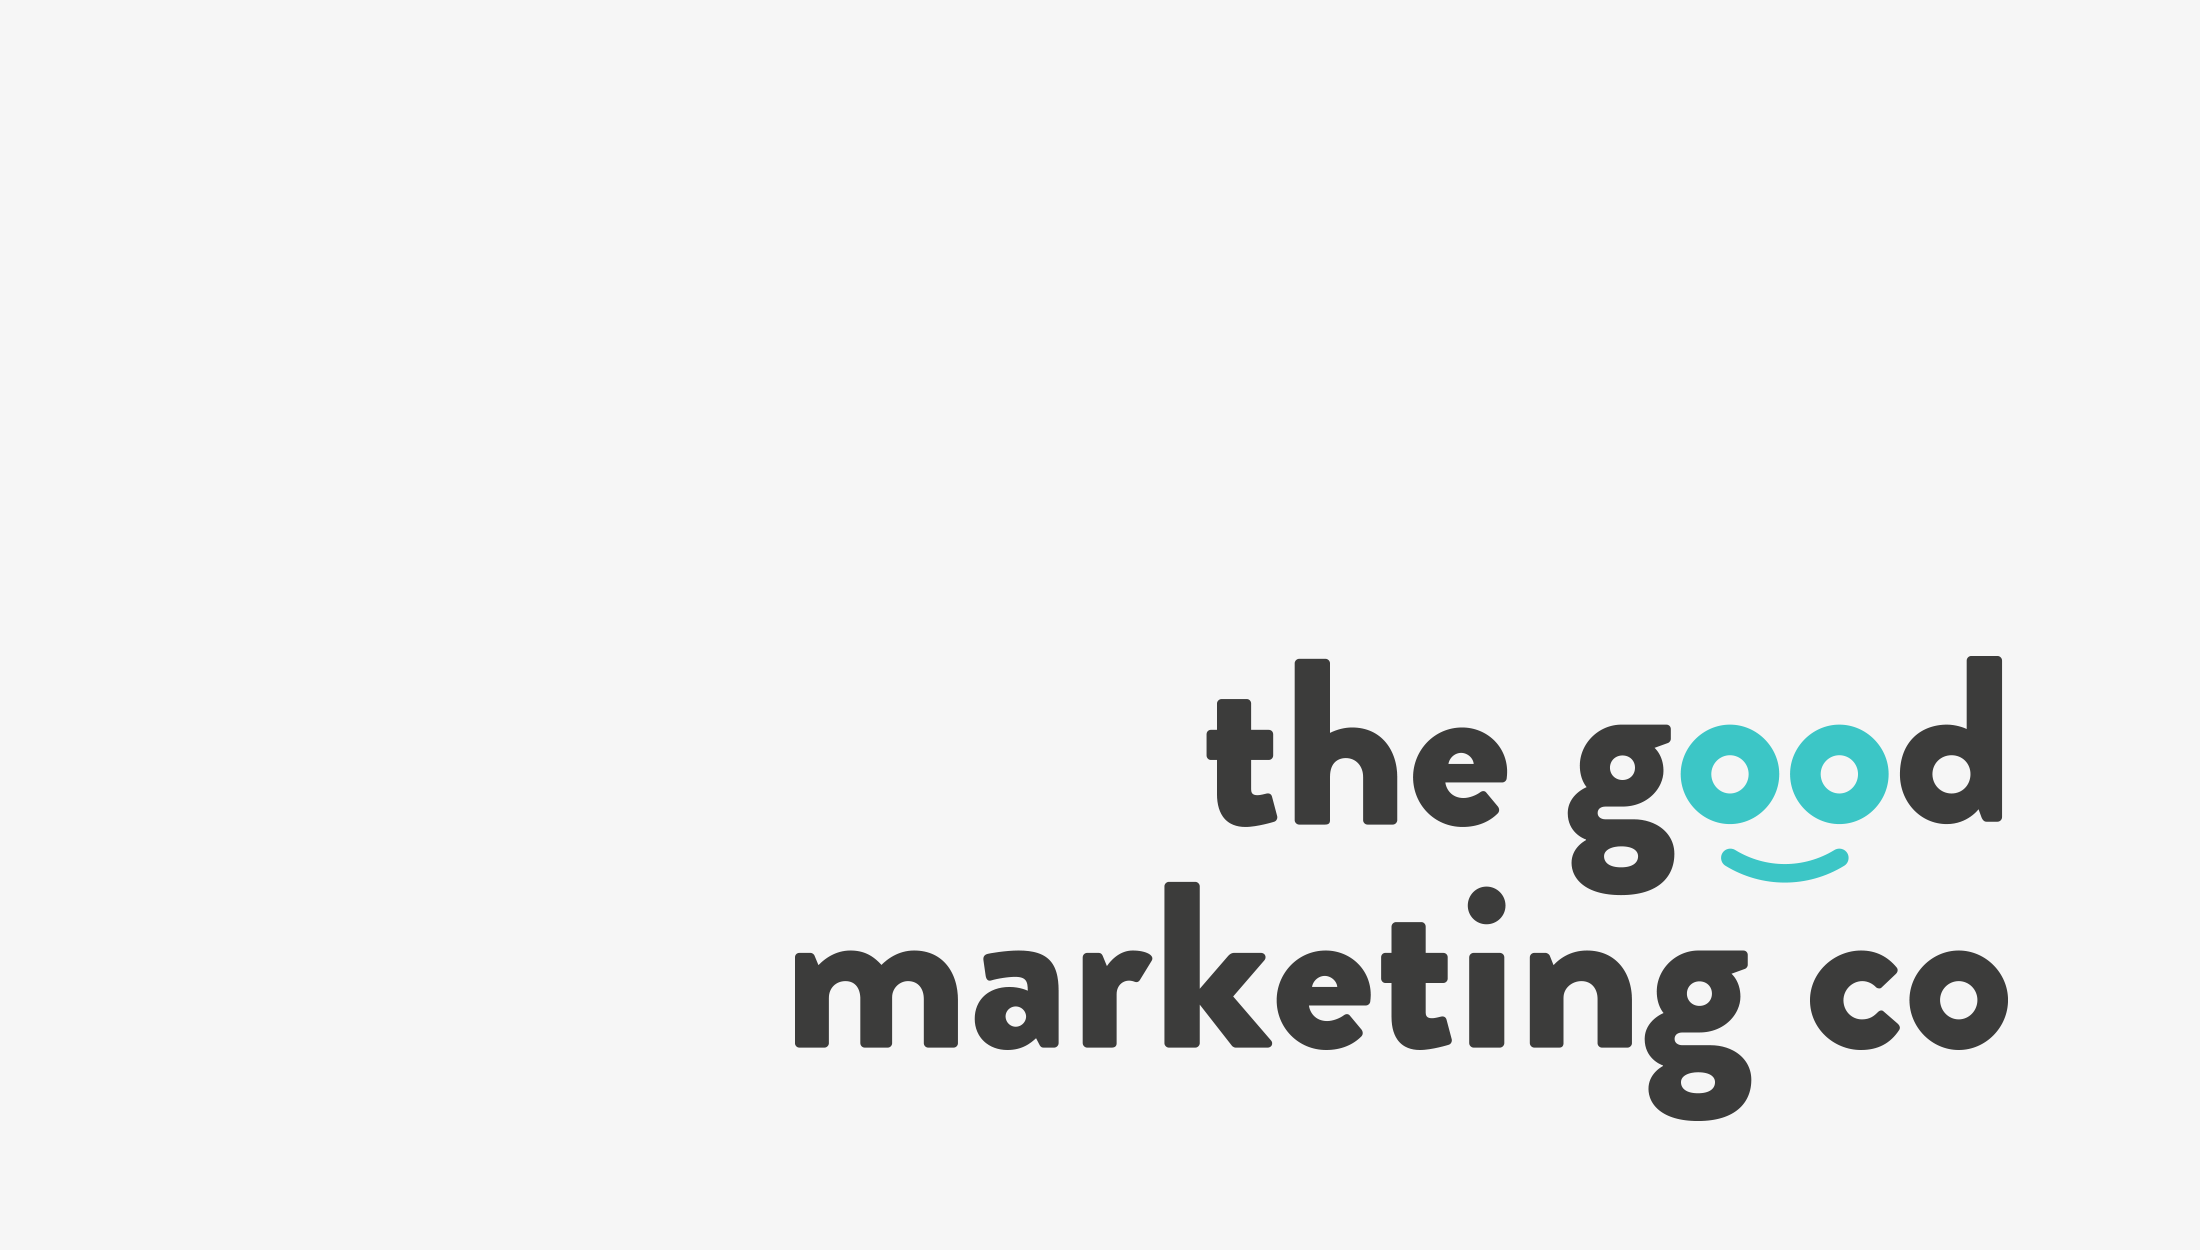 Final logo design for The Good Marketing Co, a health and wellness marketing agency with honest and ethical values - designed by Wiltshire-based graphic designer, Kaye Huett